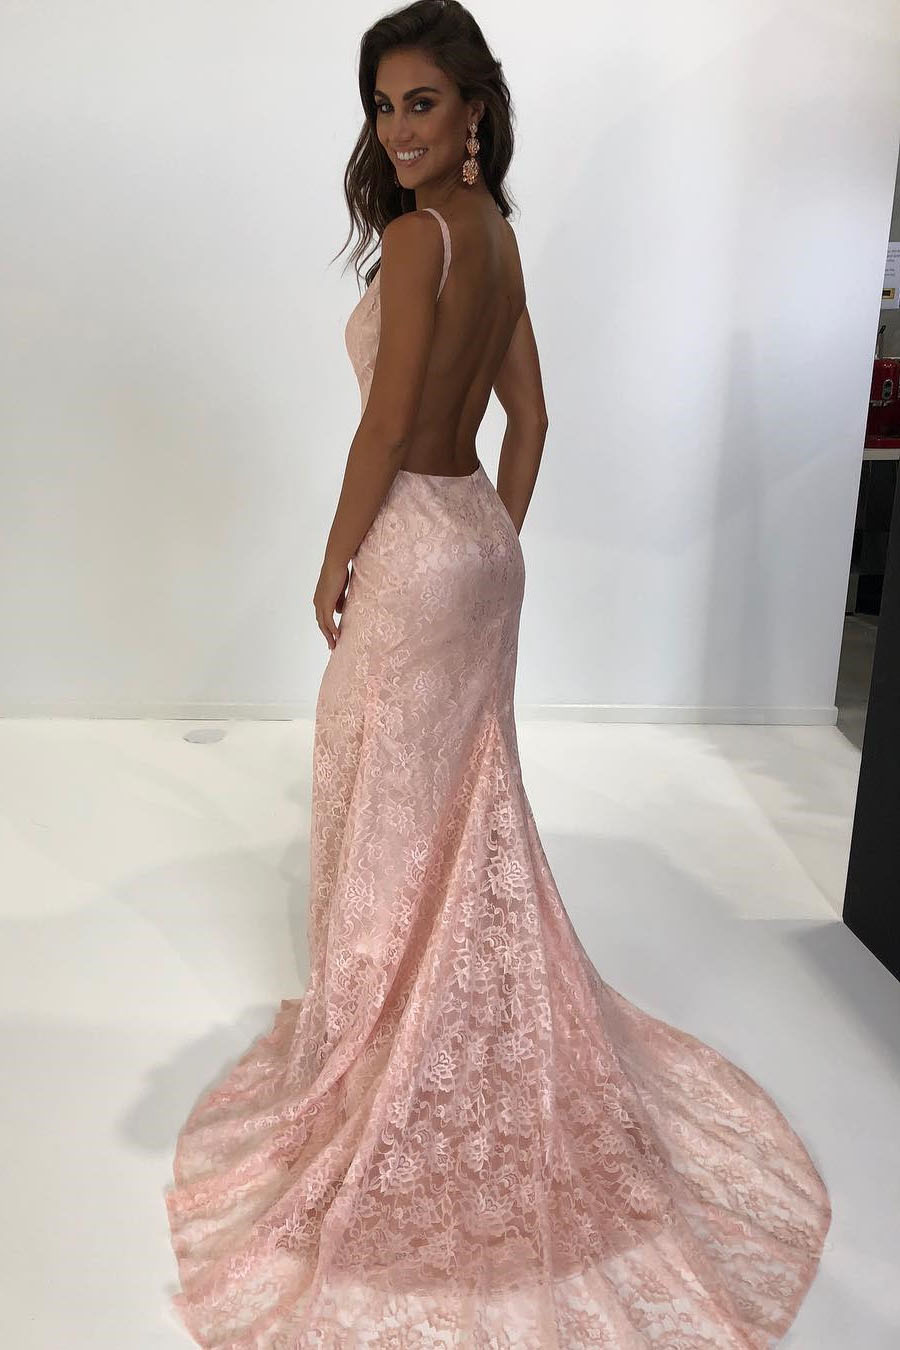 Fashion style Backless lace prom dresses for lady